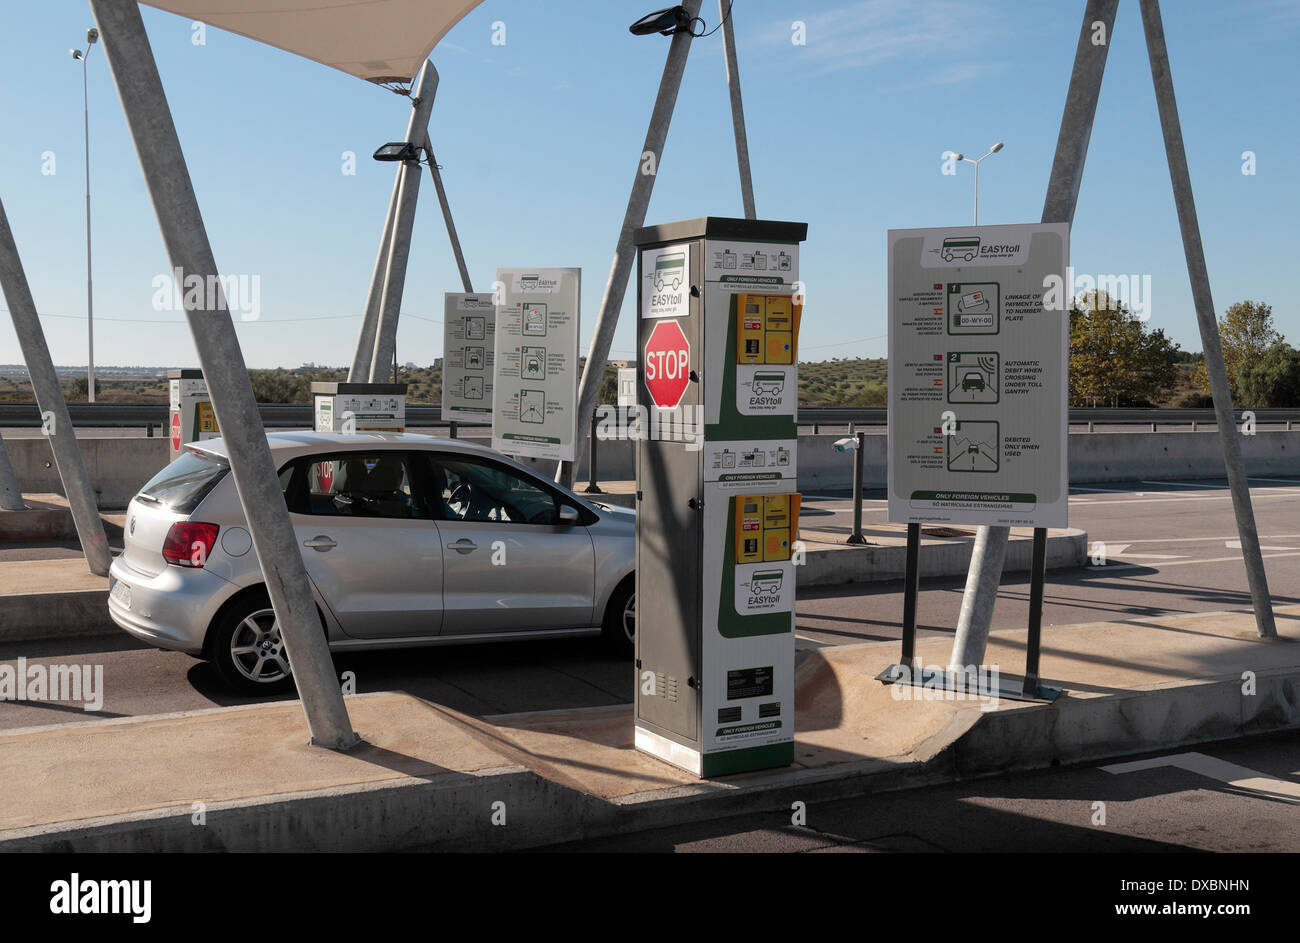 Car parked at an Electronic Toll point on the A22 motorway in southern Portugal (Algave). - Stock Image